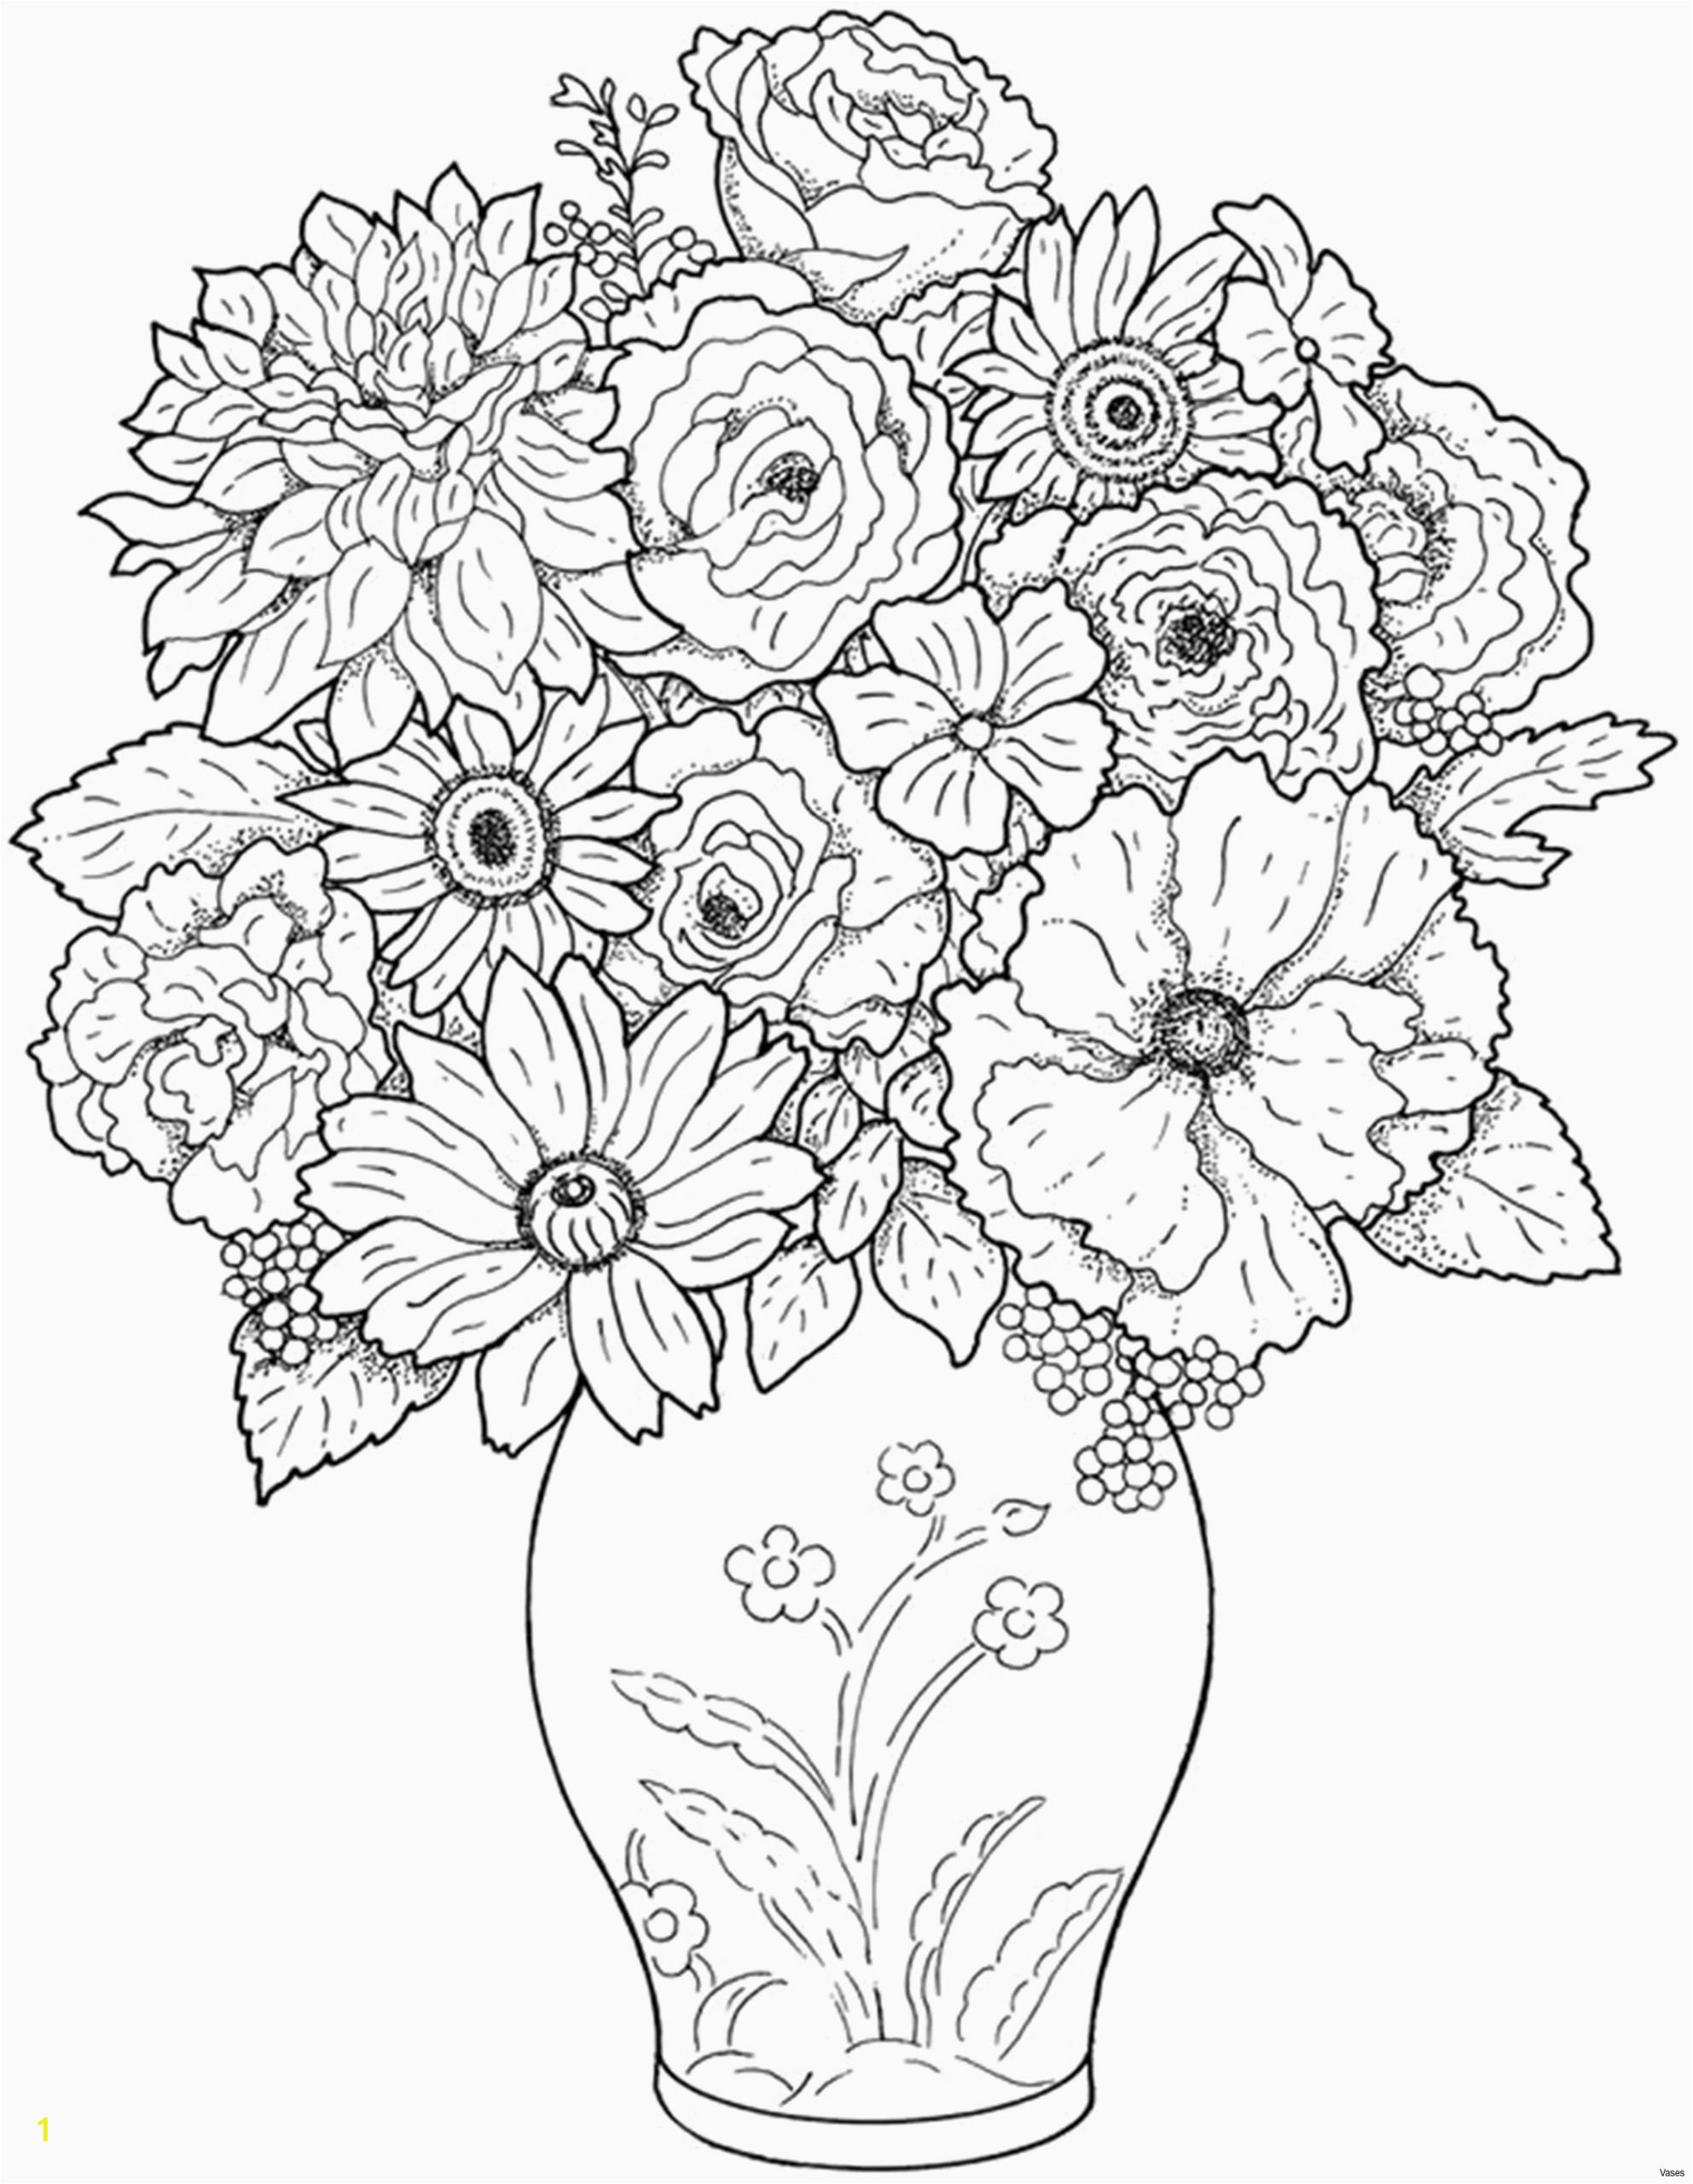 flower wreath coloring page inspirational christmas line drawings of flower wreath coloring page scaled